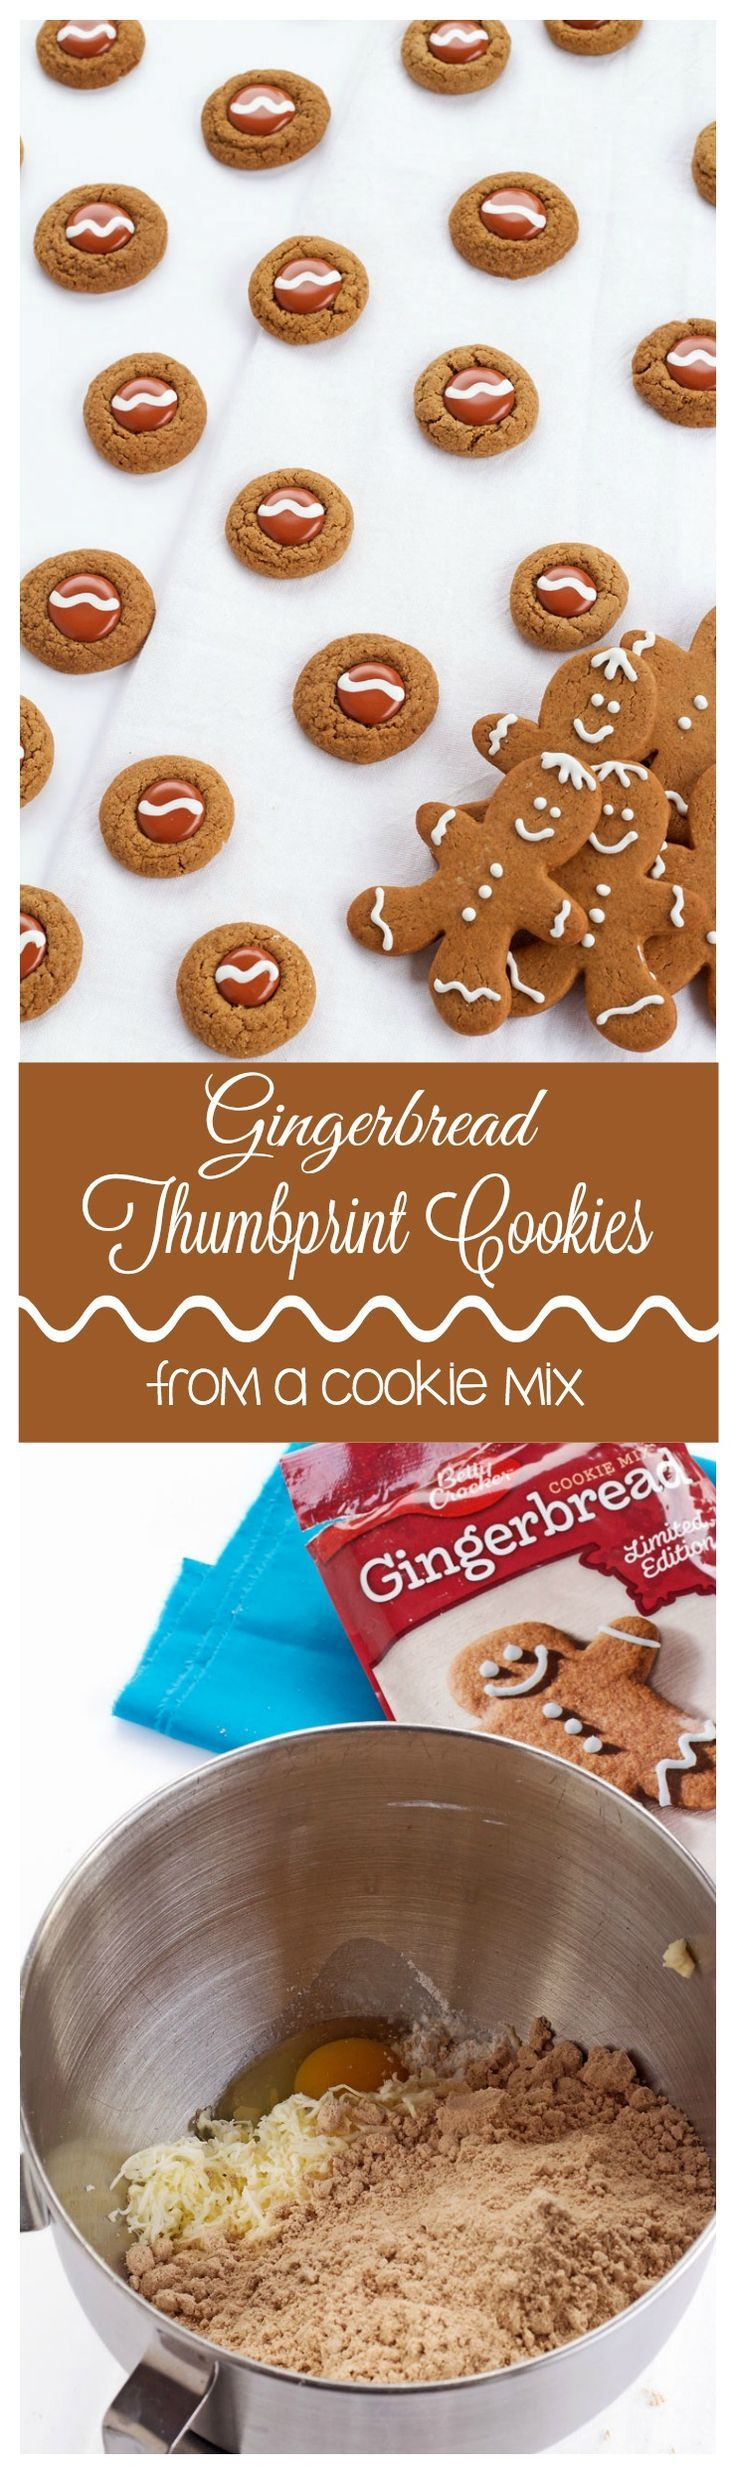 Gingerbread Thumbprint Cookies from a Cookie Mix | The Bearfoot Baker